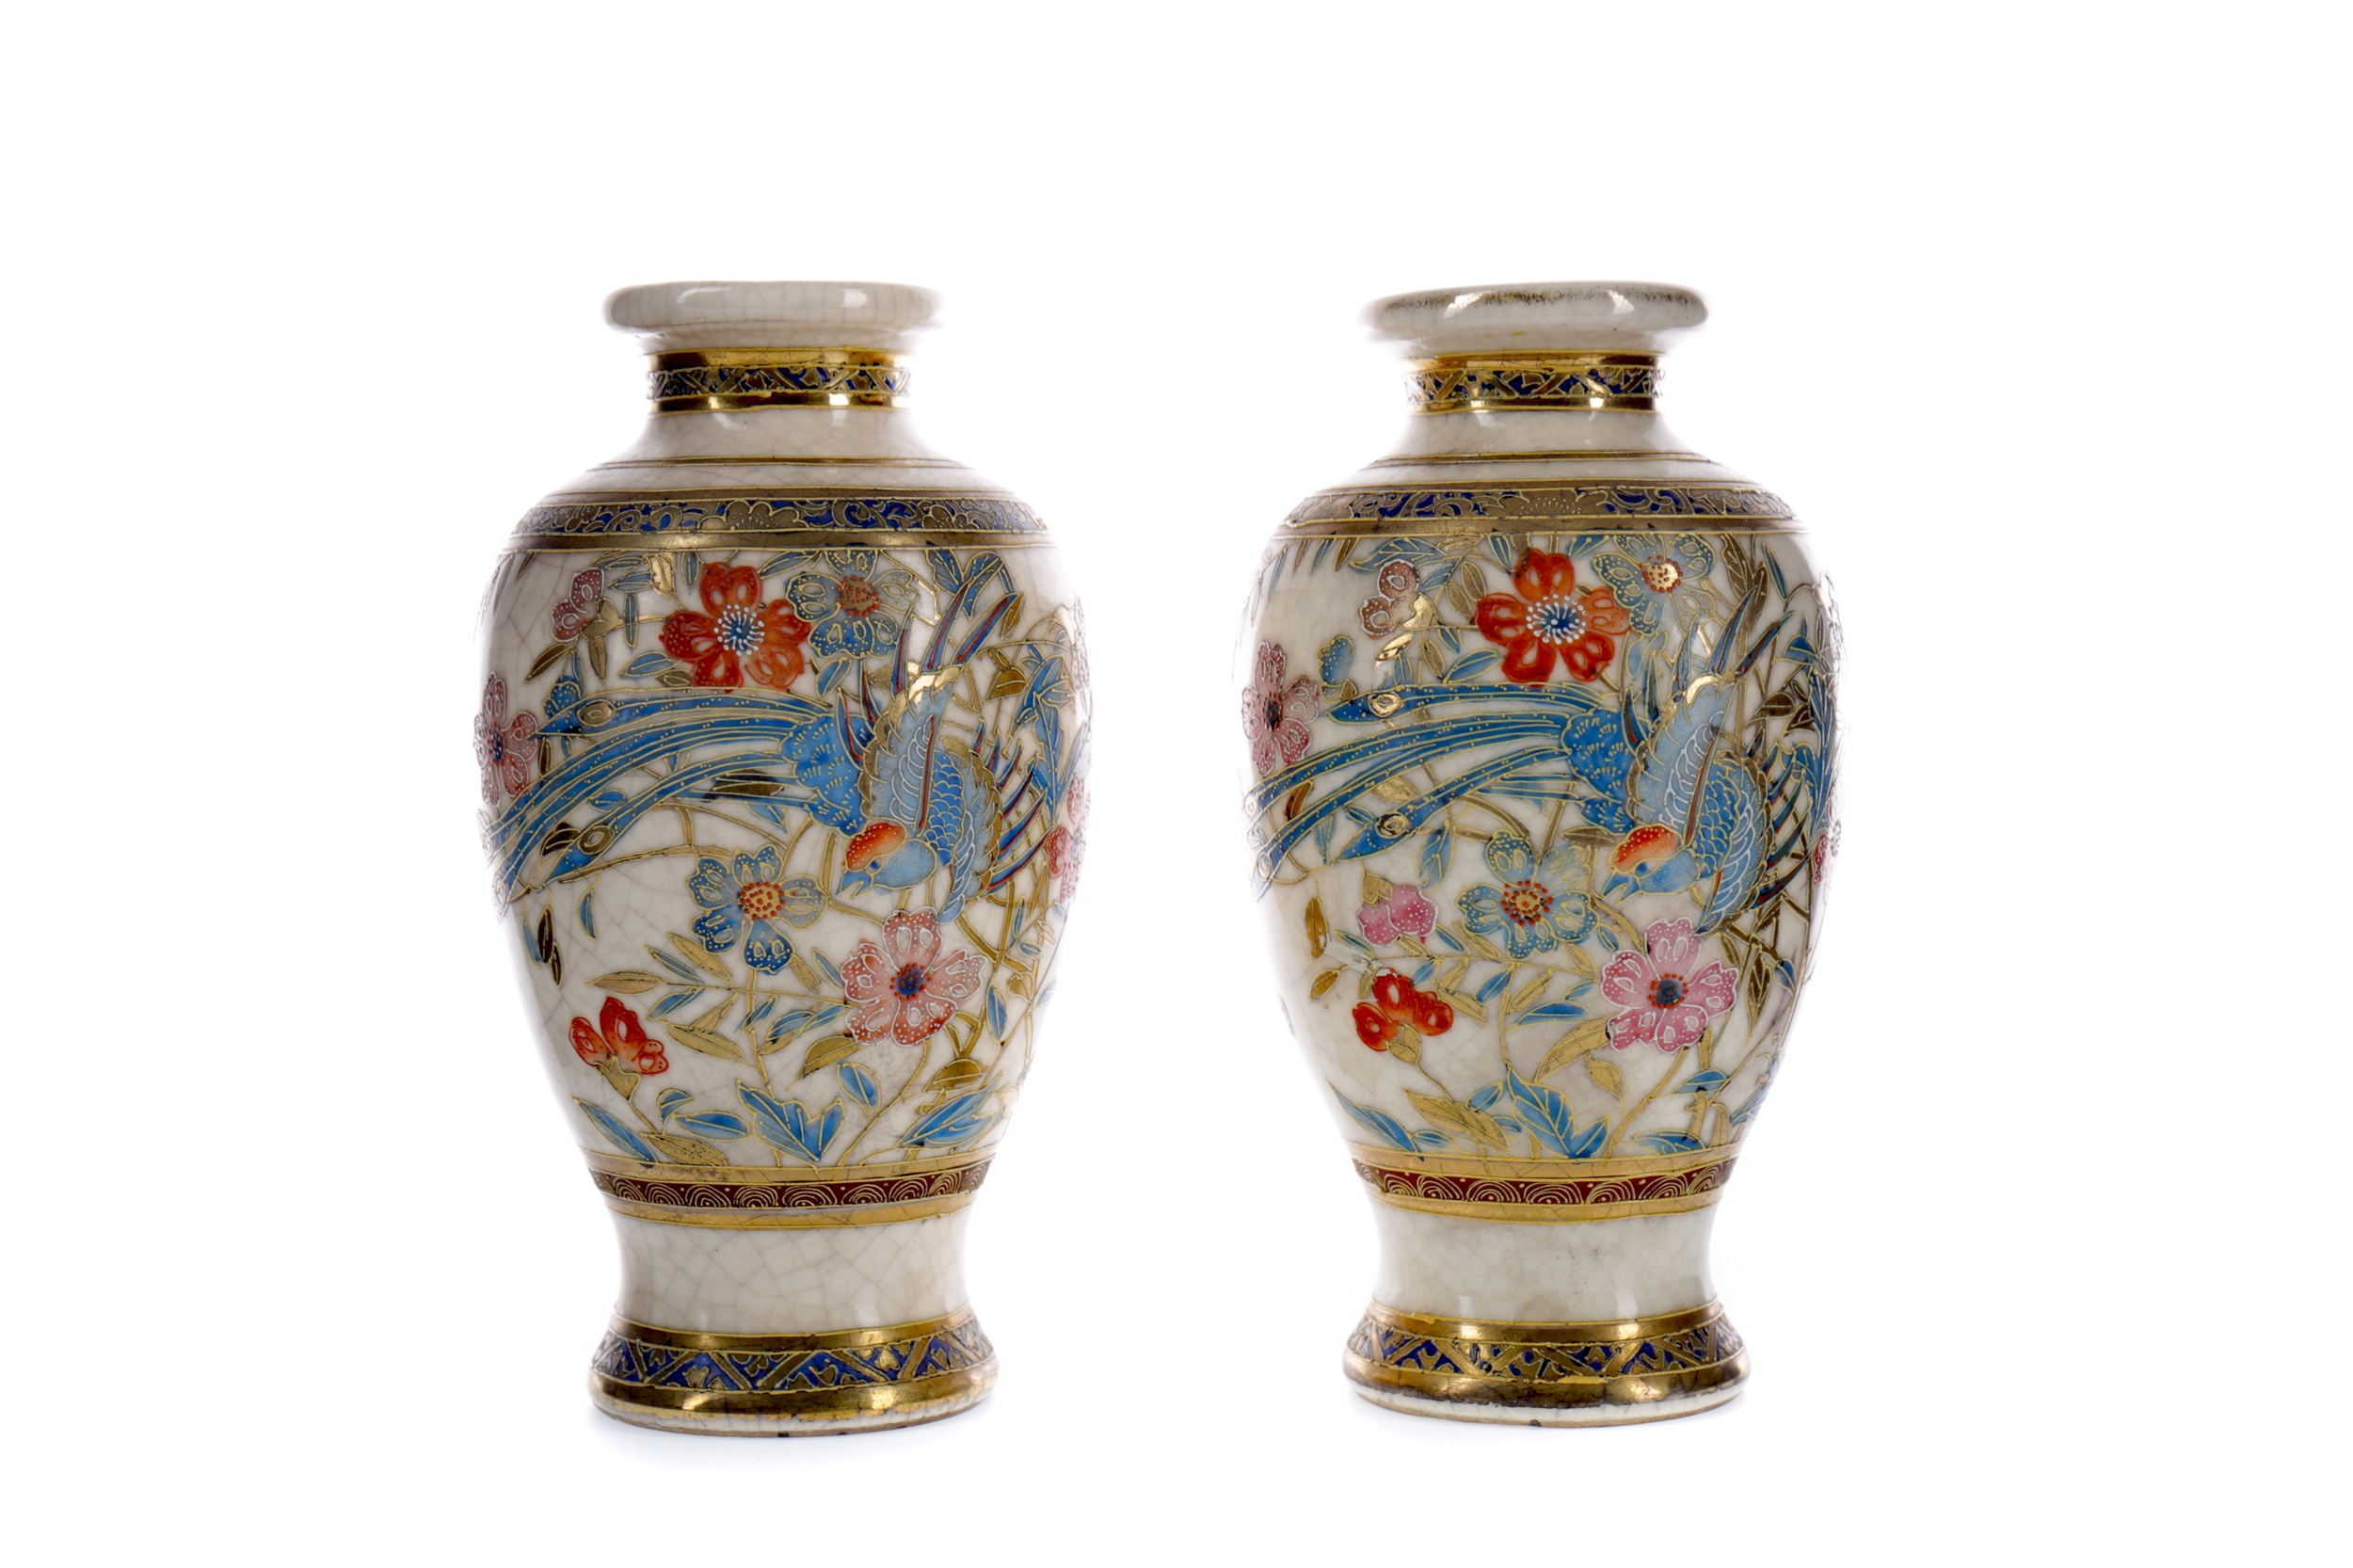 A CHINESE CRACKLE GLAZE PORCELAIN GINGER JAR AND COVER, ALONG WITH A PAIR OF SATSUMA VASES